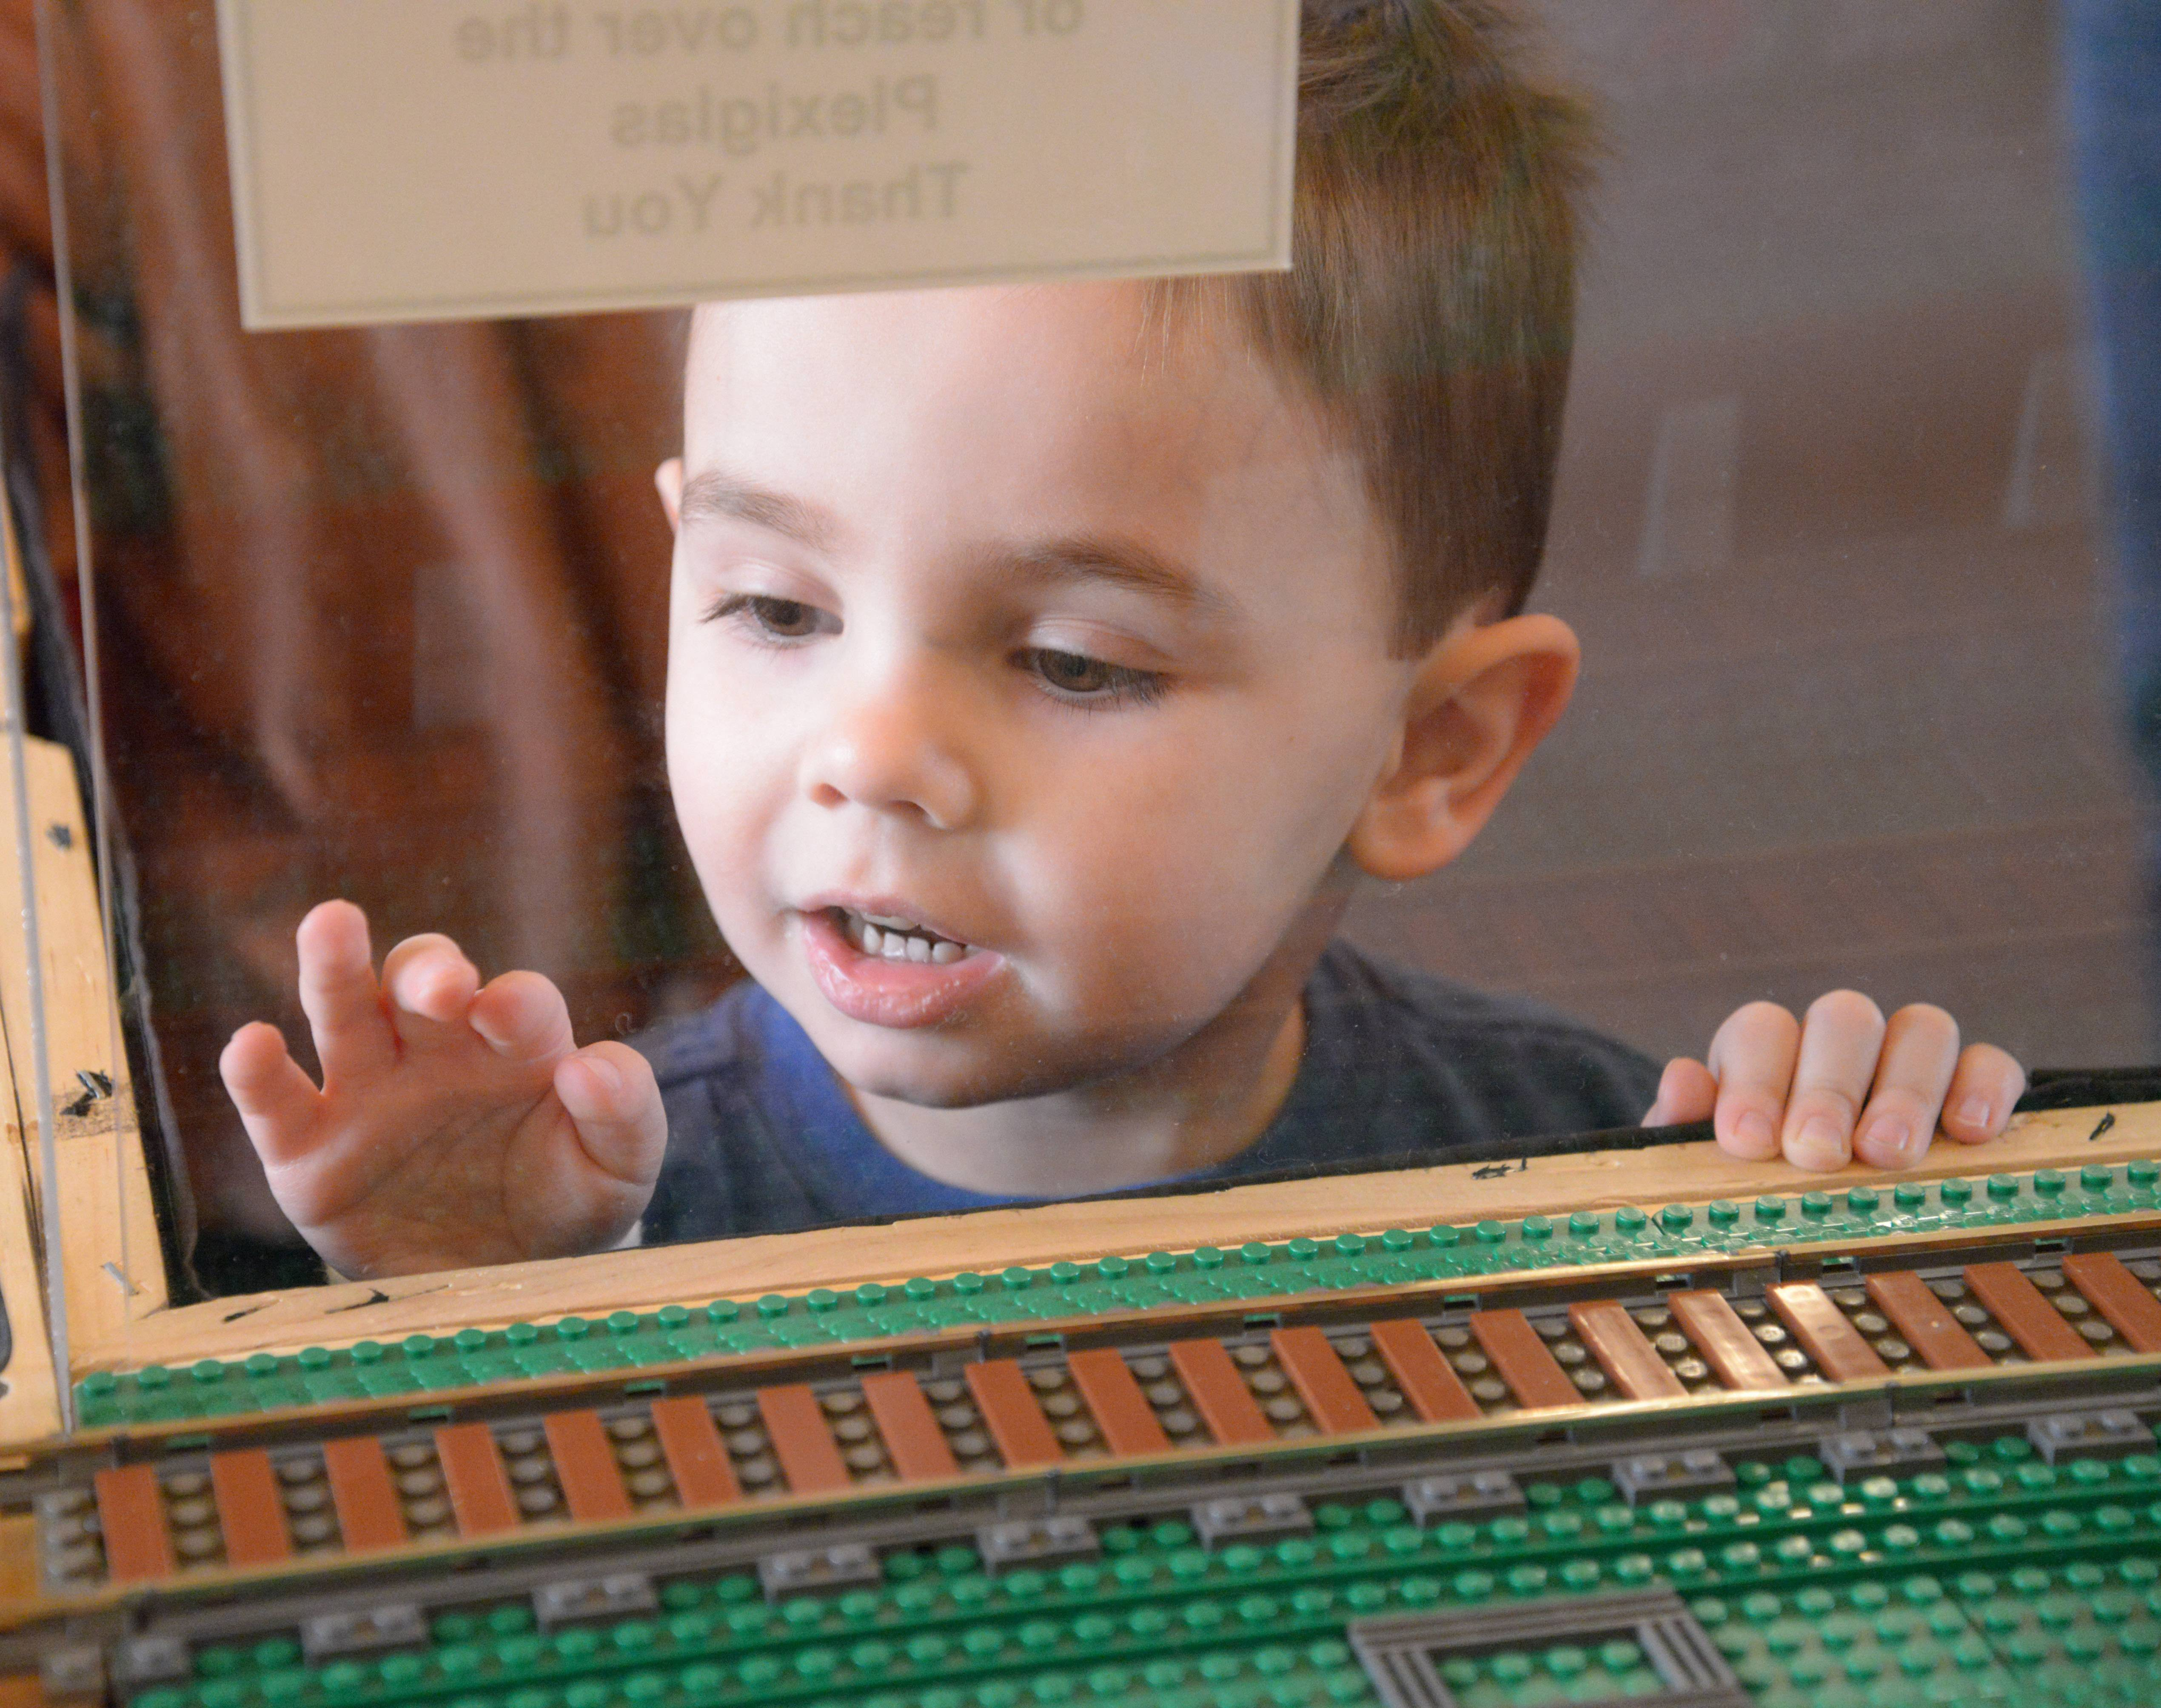 Children can feel the draw of toys from a simpler time this weekend when the Northern Illinois Lego Train Club sets up its display at the DuPage County Historical Museum.